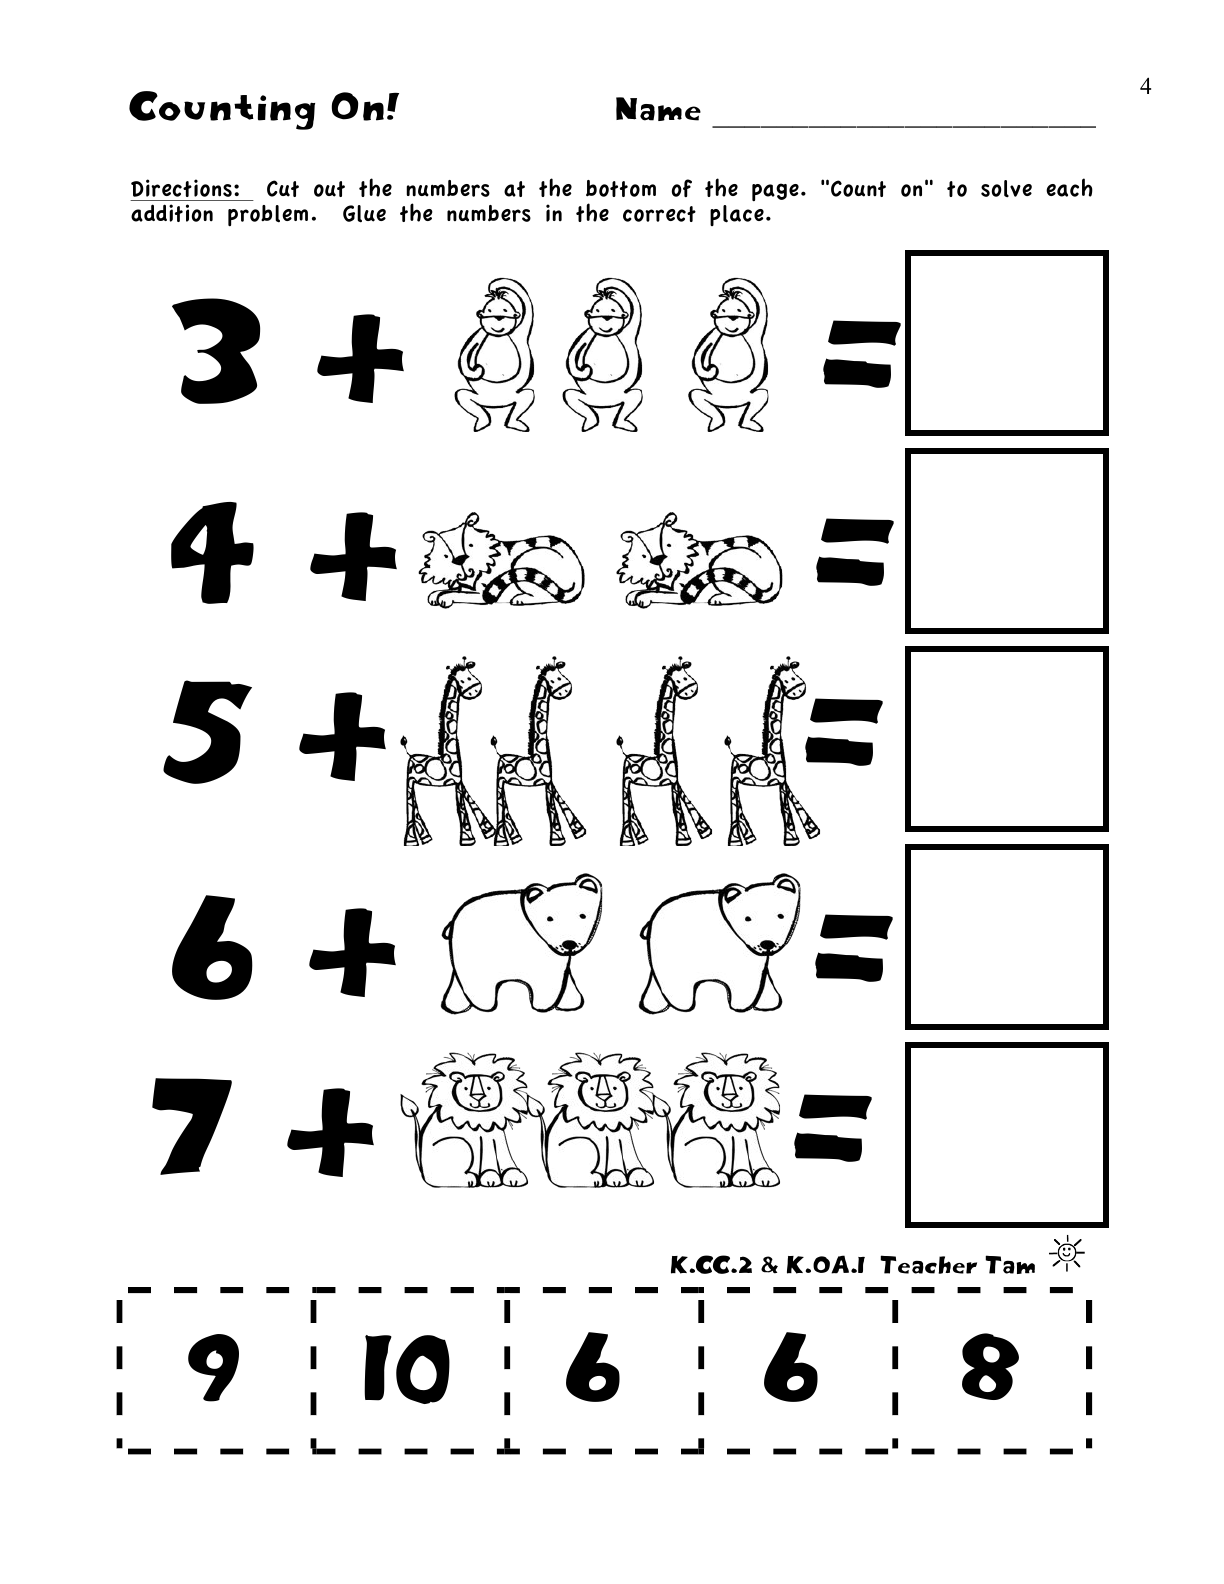 Adding Math Worksheet For Preschoolers